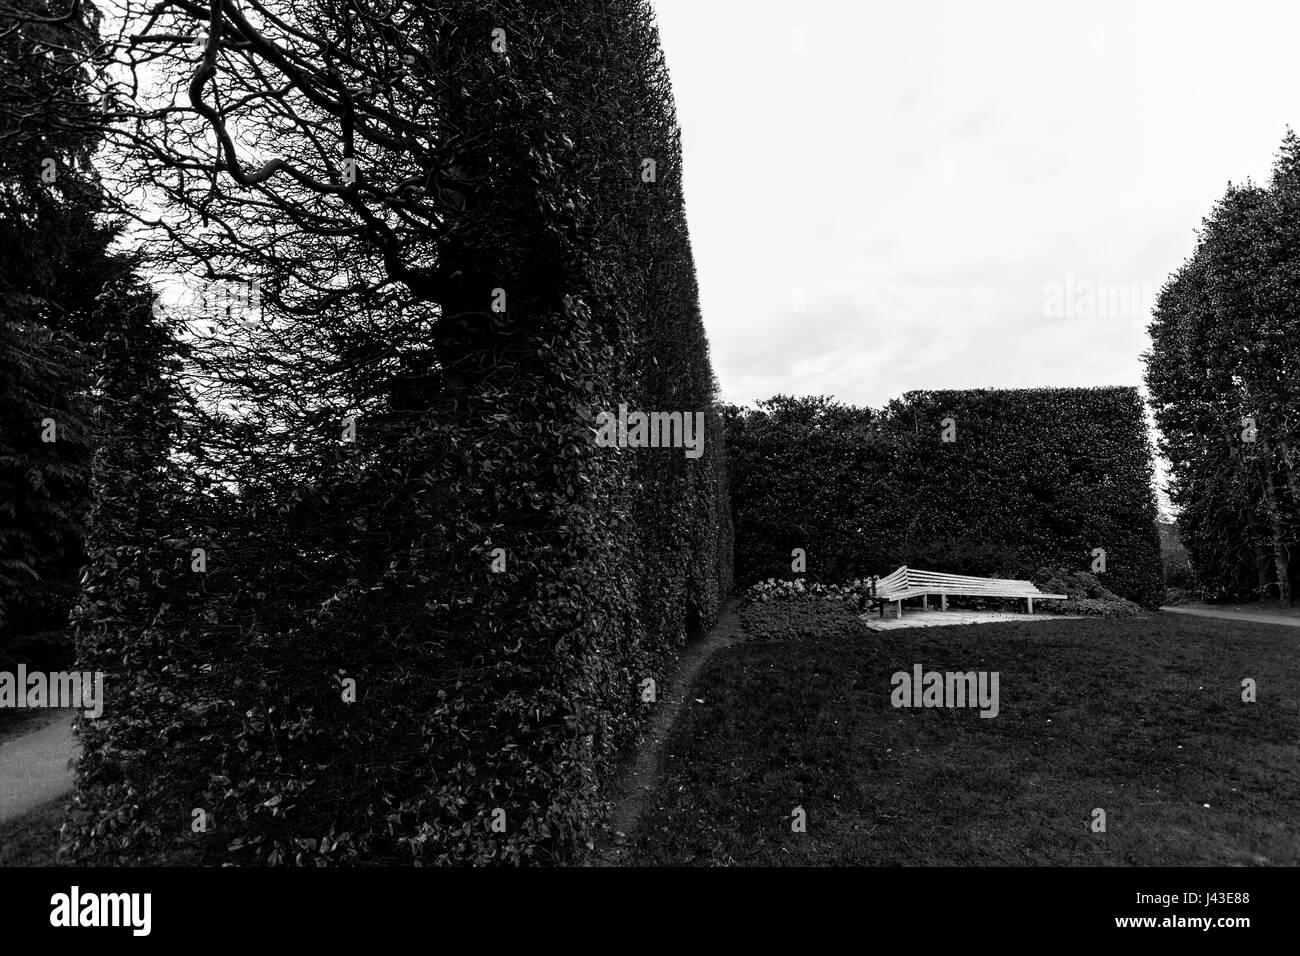 A bench in the distance against a long bush fence in black and white at the Royal Botanic Garden in Edinburgh, Scotland - Stock Image